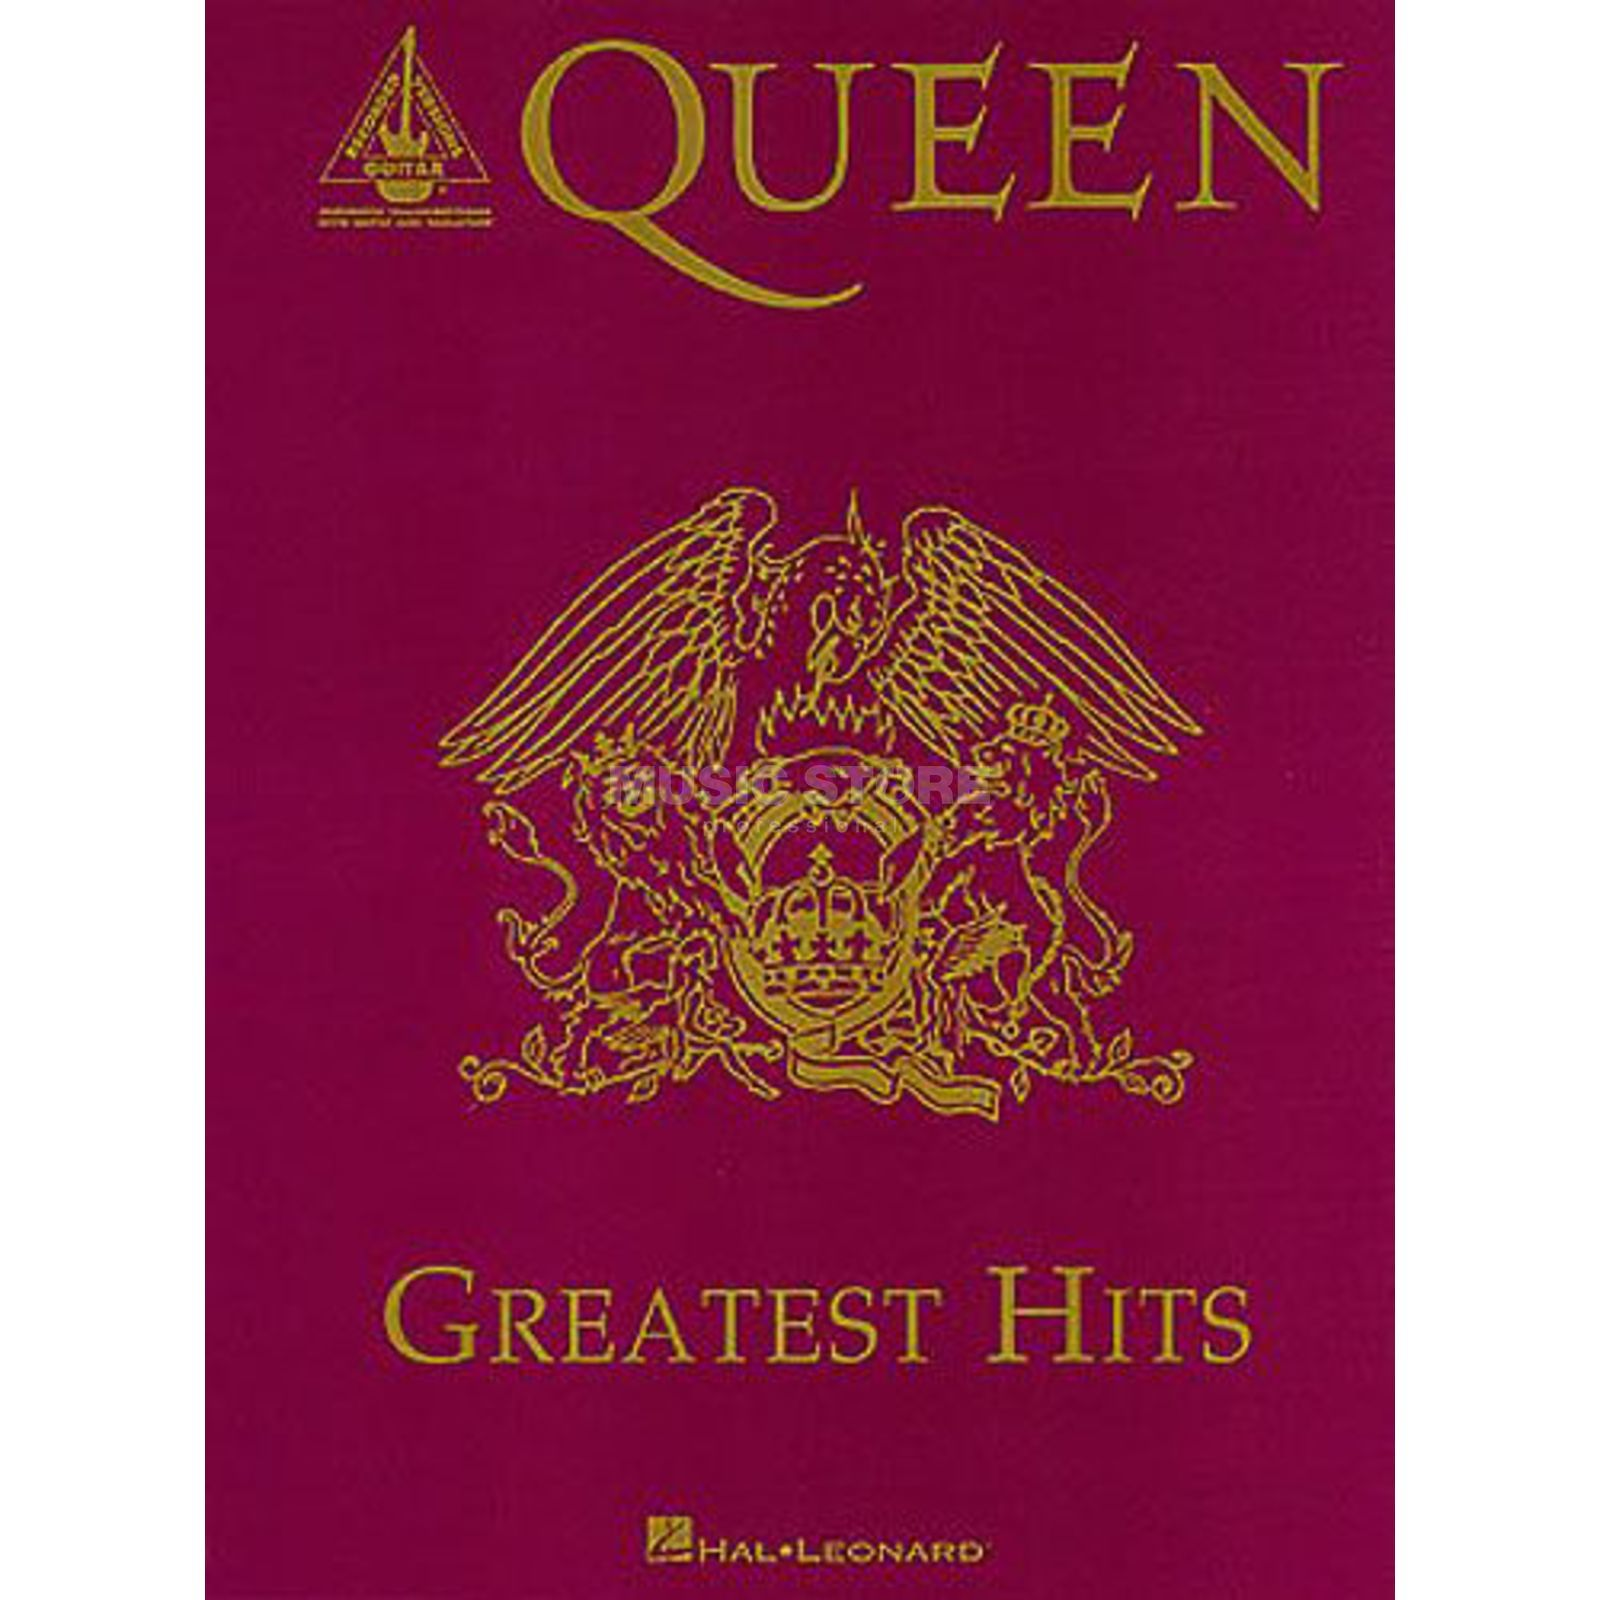 Hal Leonard Queen: Greatest Hits (Guitar Recorded Versions) Image du produit